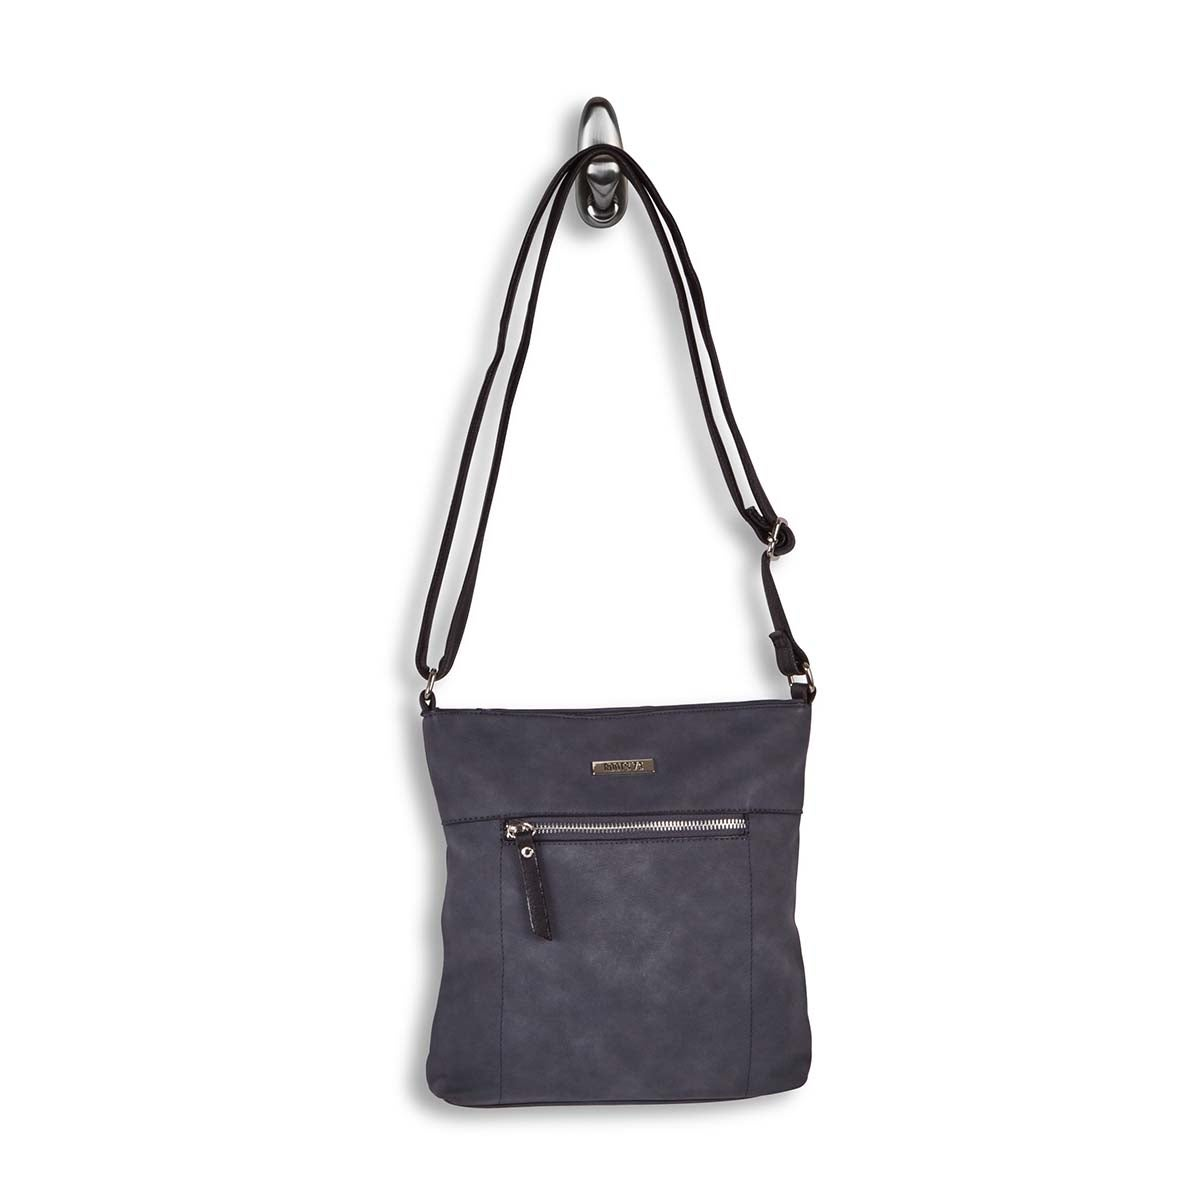 Lds denim north/south top zip crossbody